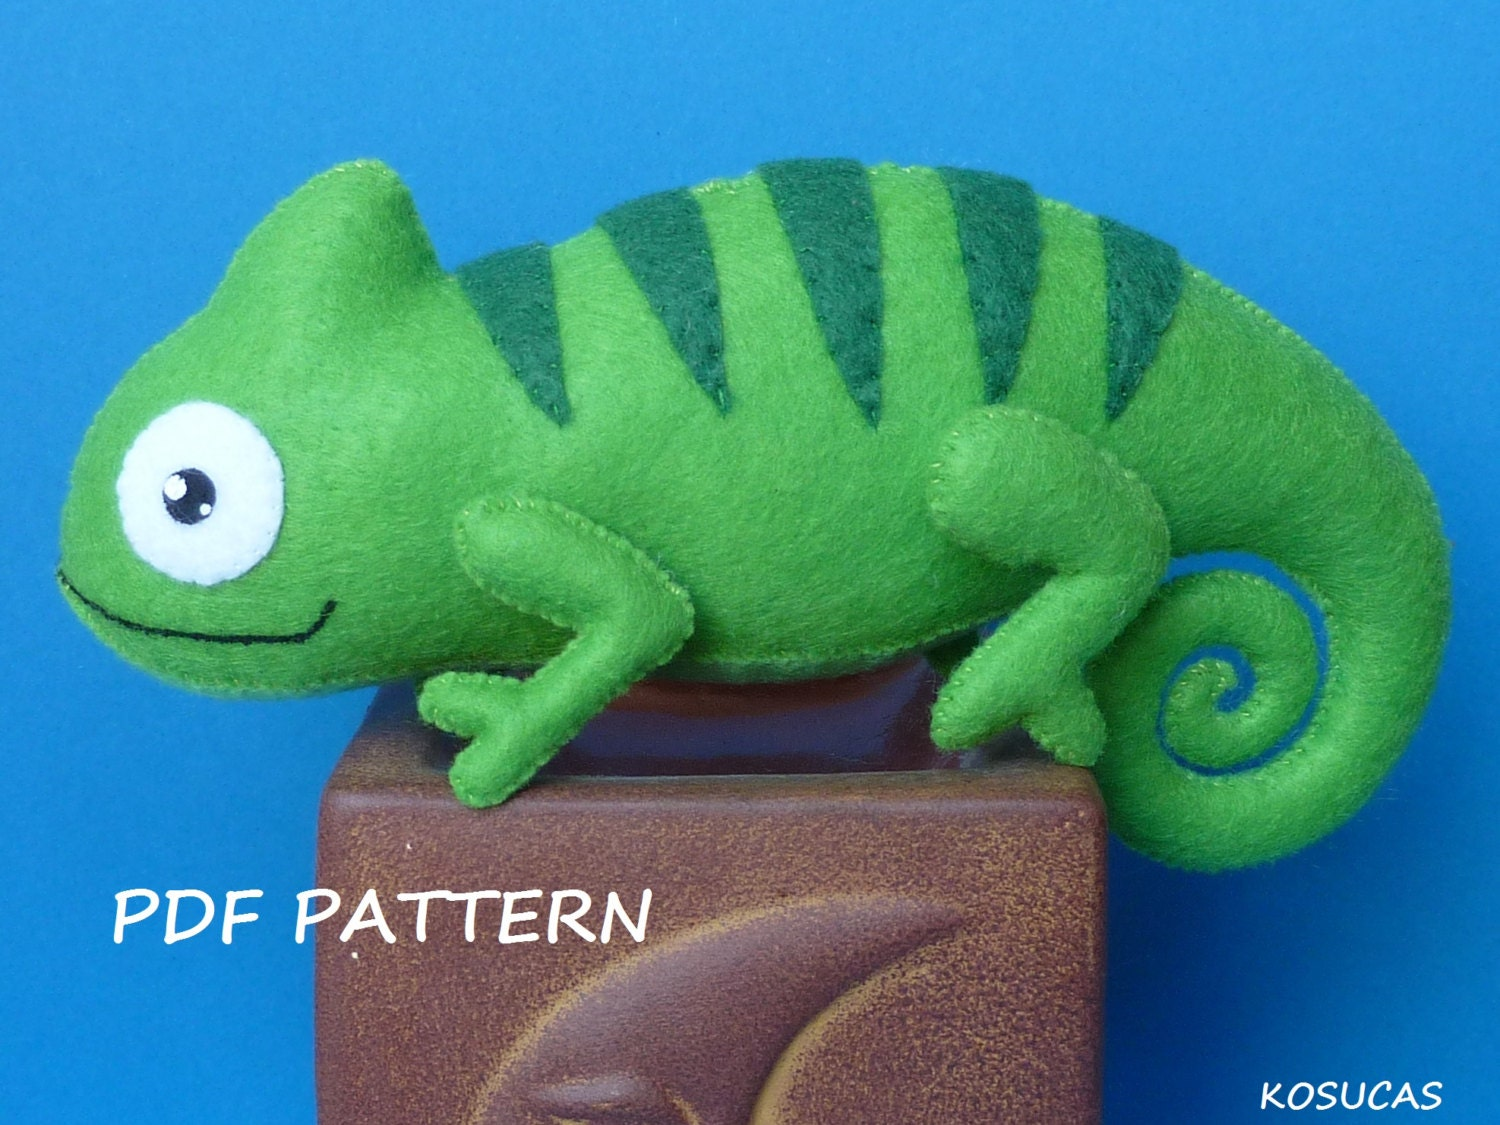 PDF sewing pattern to make a felt chameleon from Kosucas on Etsy Studio